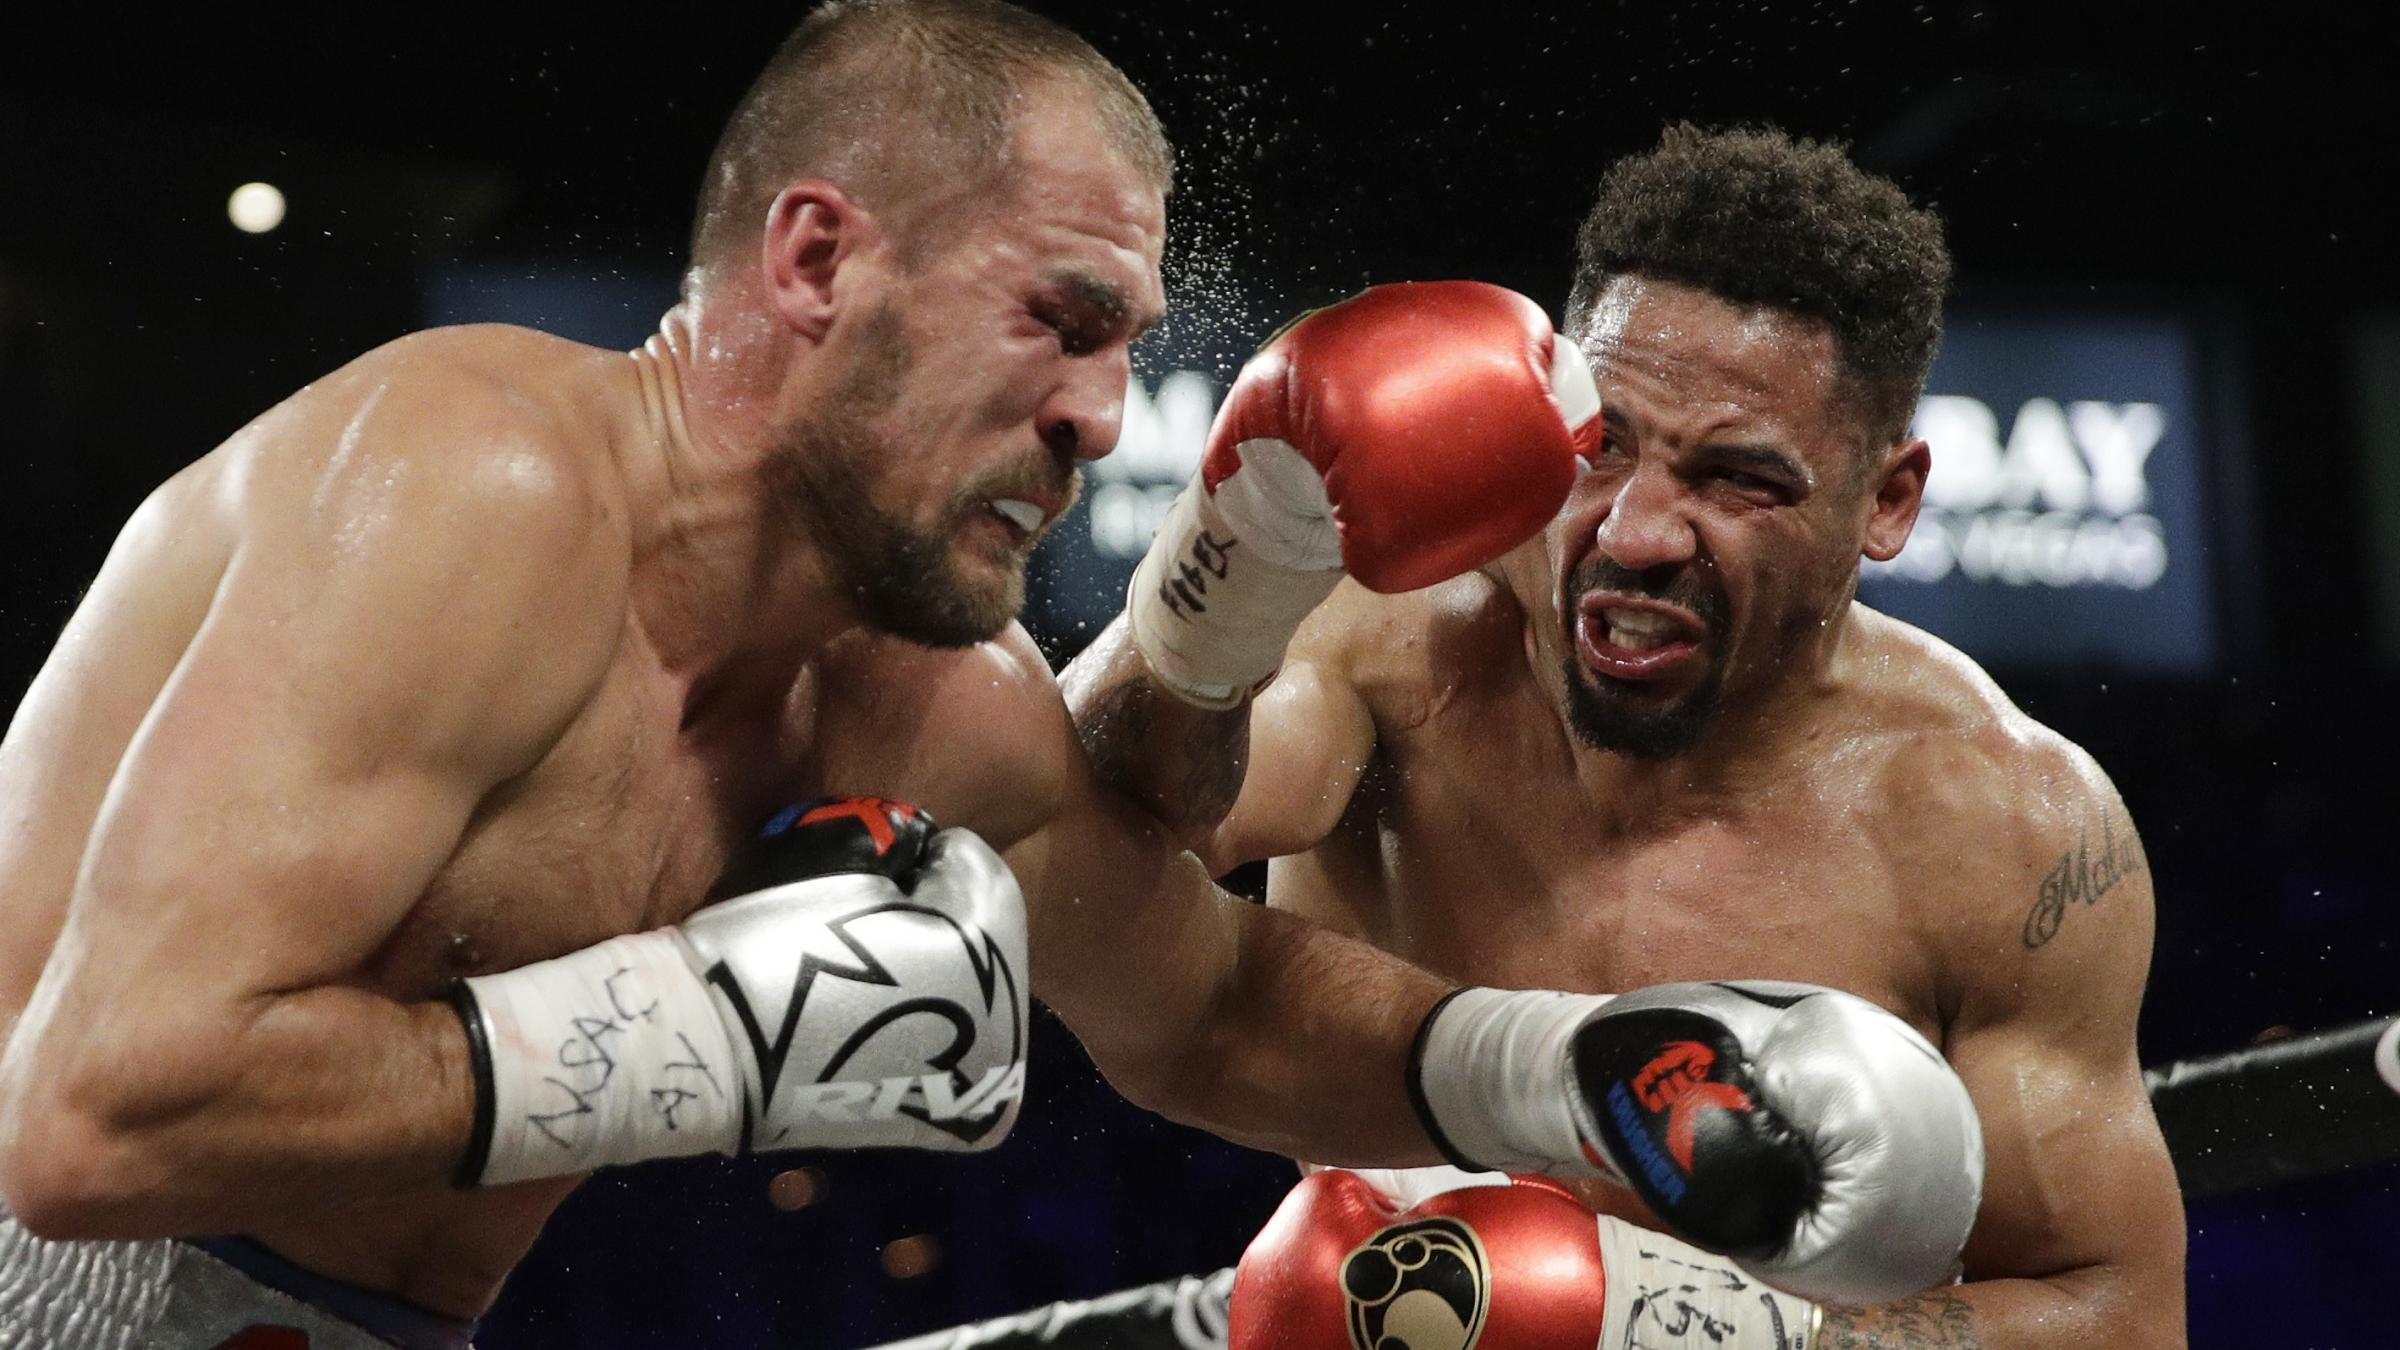 Sergey Kovalev to appeal Andre Ward stoppage over low blows